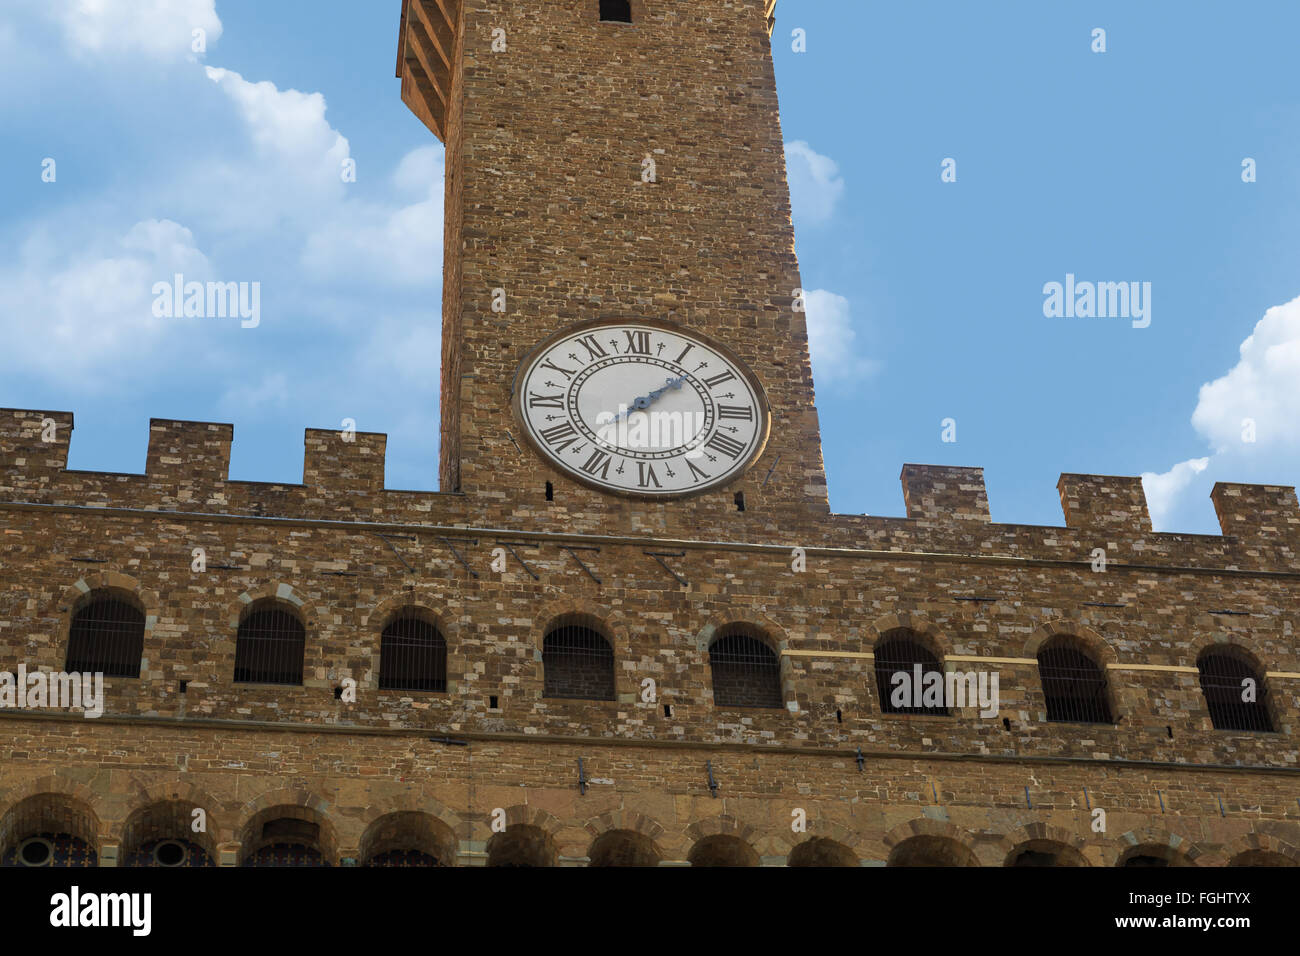 View of historical Vecchio Palace in Piazza Della Signoria in Florence, on cloudy blue sky background. - Stock Image